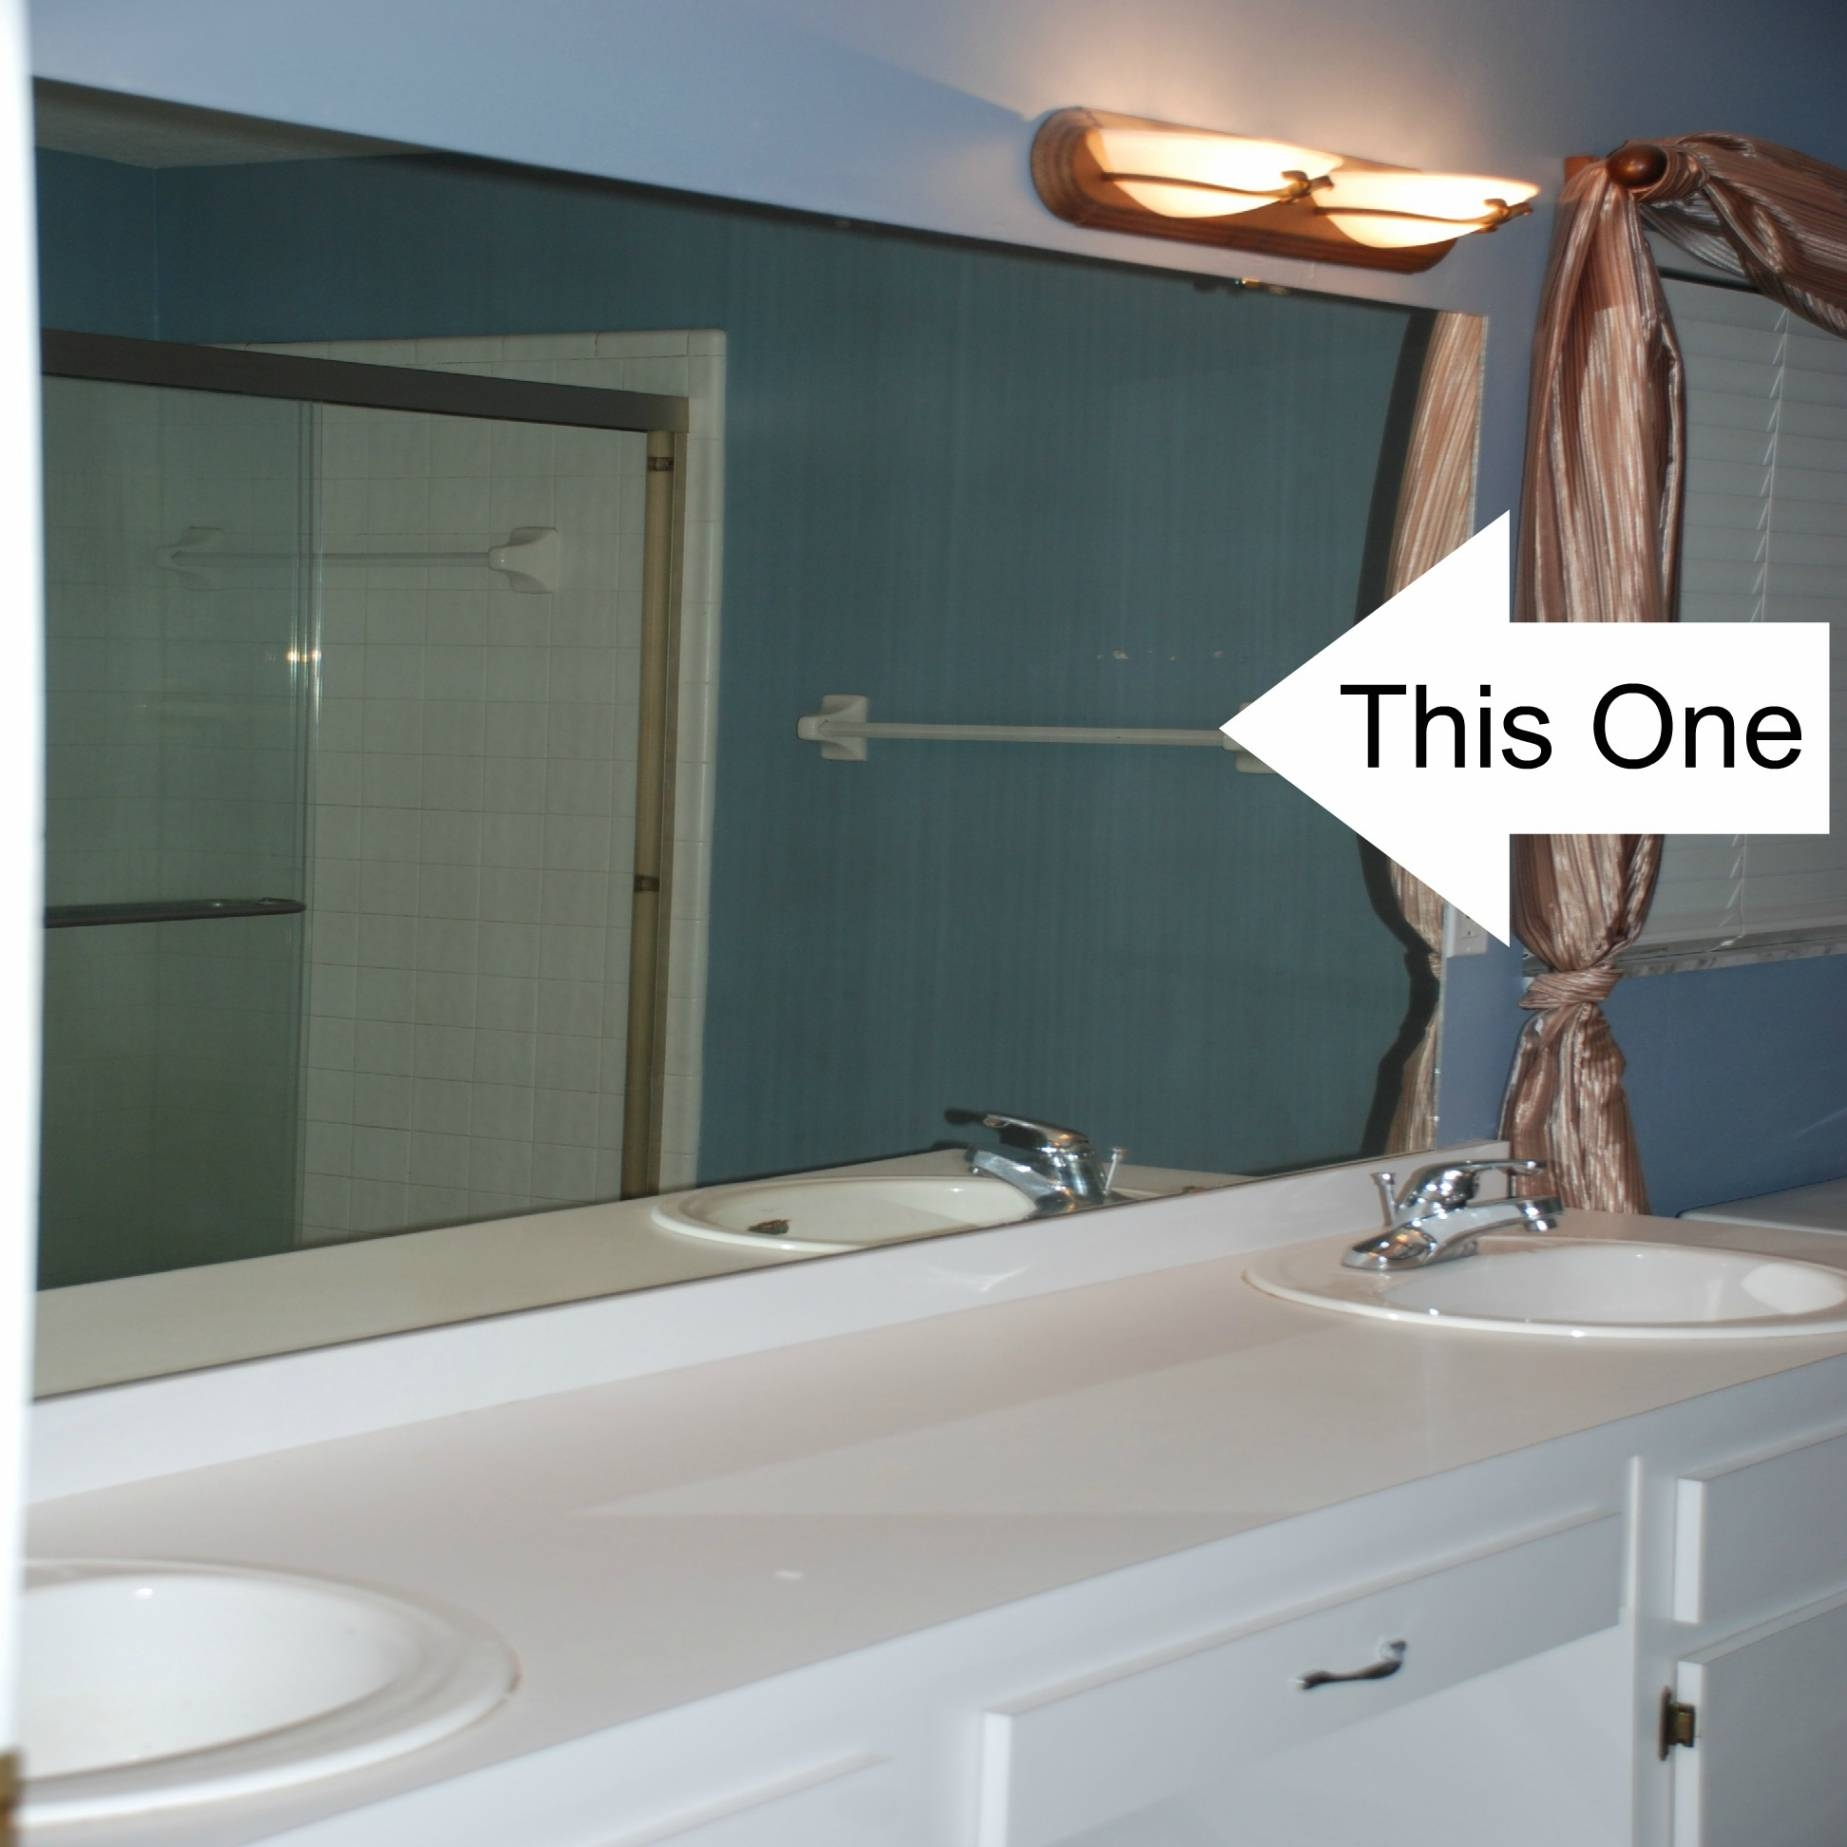 Large Bathroom Mirror Frameless – Harpsounds.co pertaining to Large Frameless Bathroom Mirrors (Image 9 of 15)